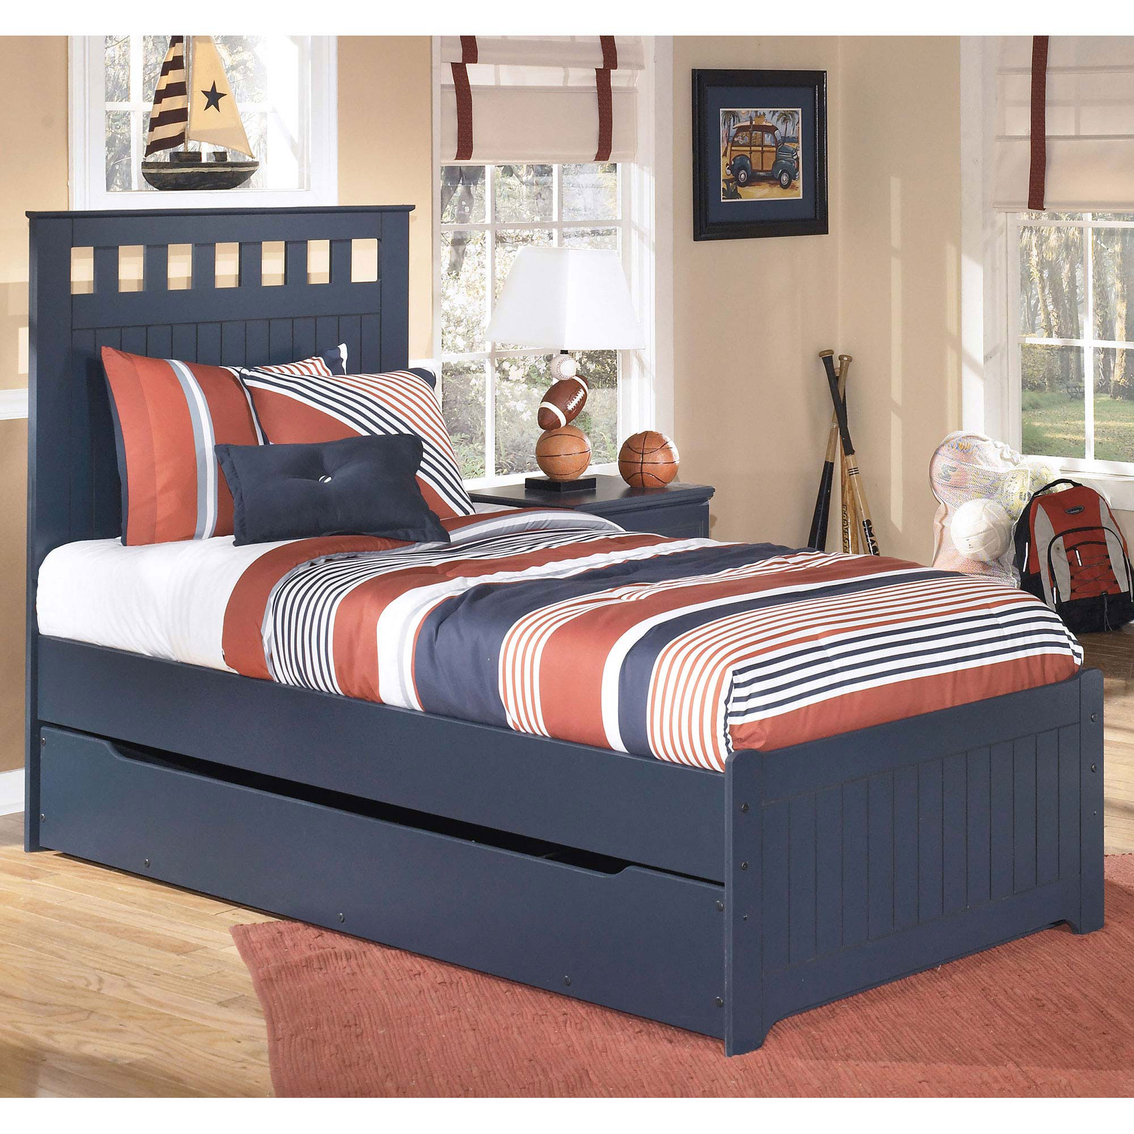 Ashley Leo Twin Trundle Bed Beds Home Appliances Shop The Exchange